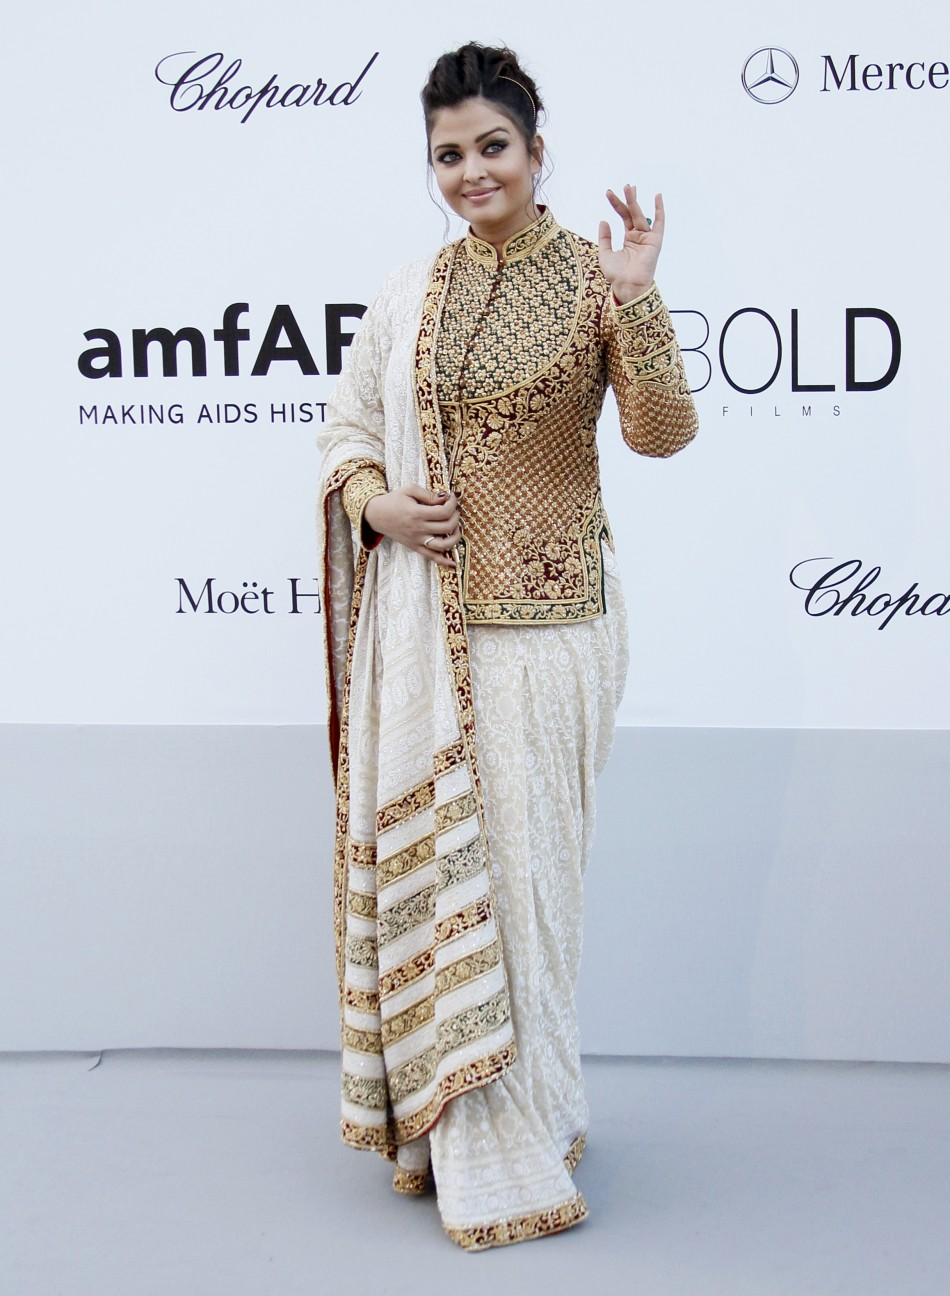 Actress Aishwarya Rai arrives for amfAR's Cinema Against AIDS 2012 event in Antibes during the 65th Cannes Film Festival May 24, 2012. (Reuters)